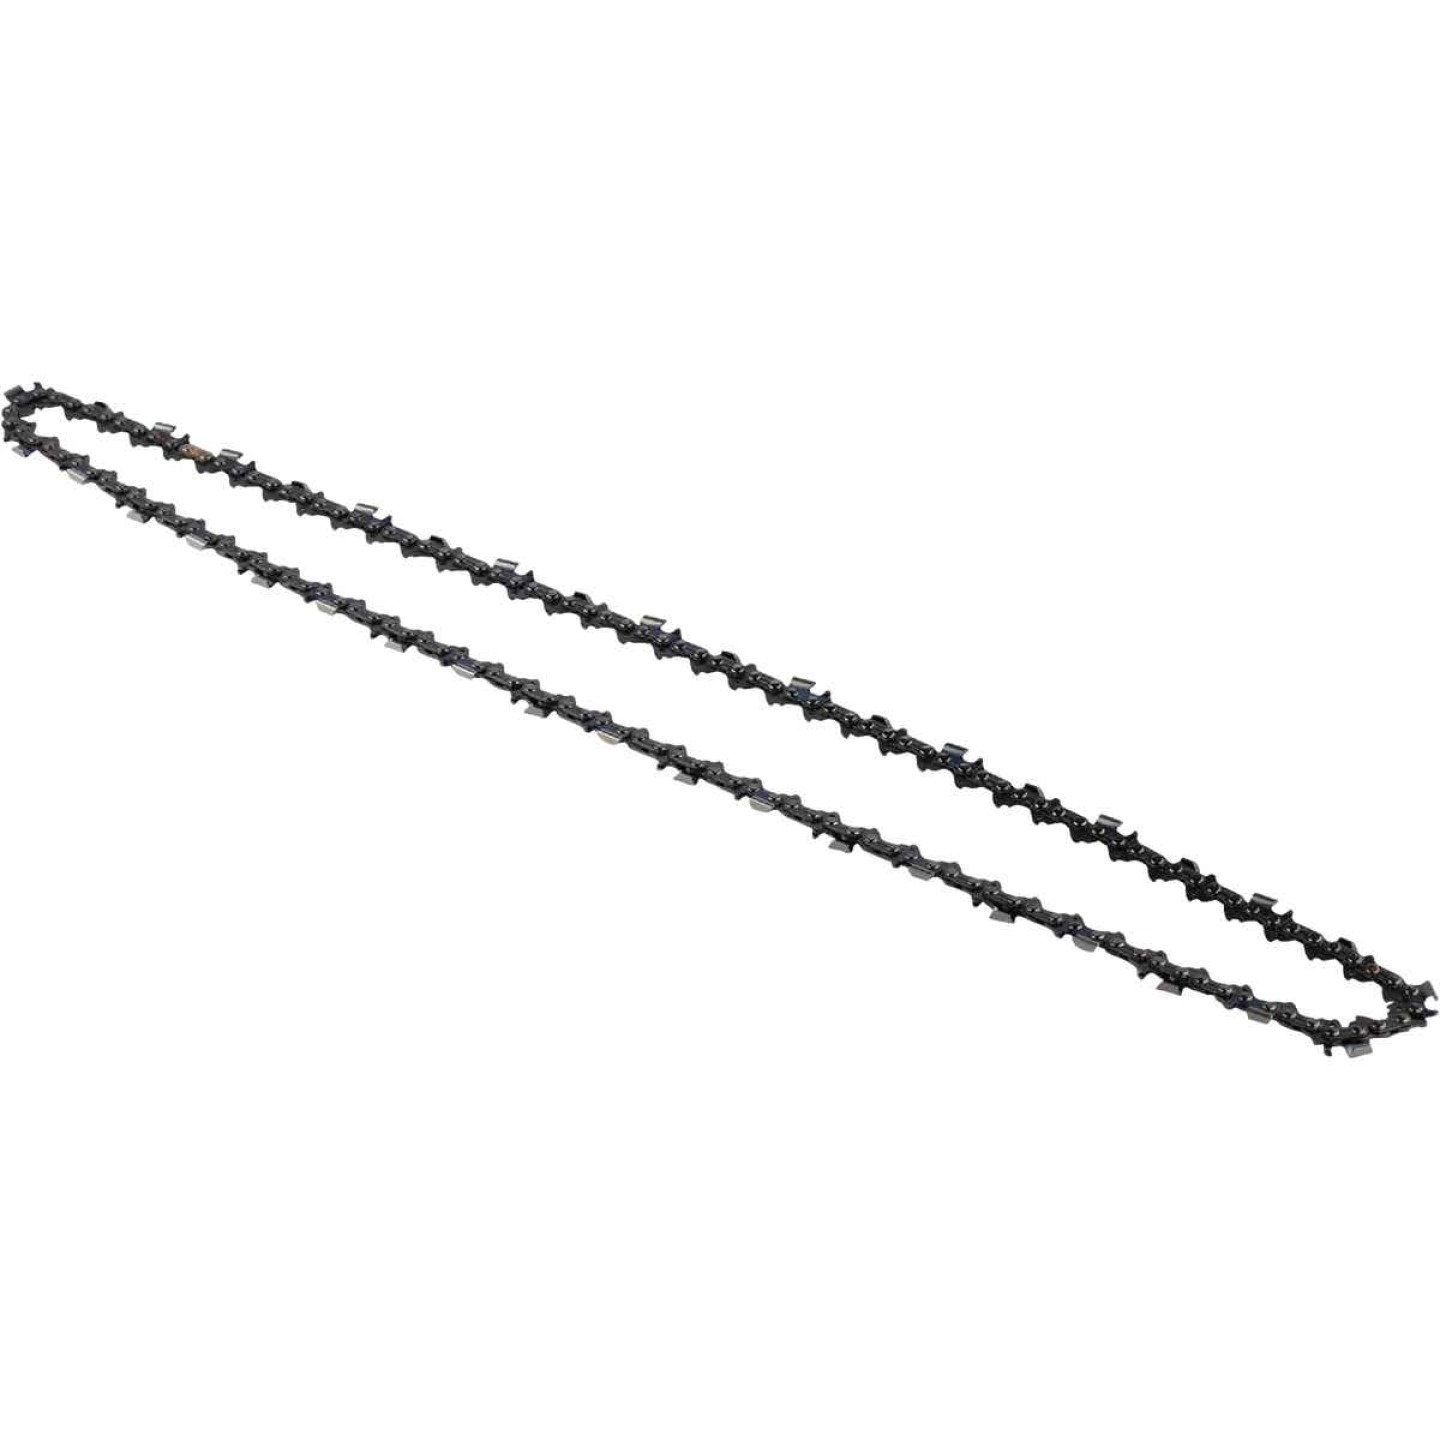 Oregon ControlCut H78 20 In. Chainsaw Chain Image 4